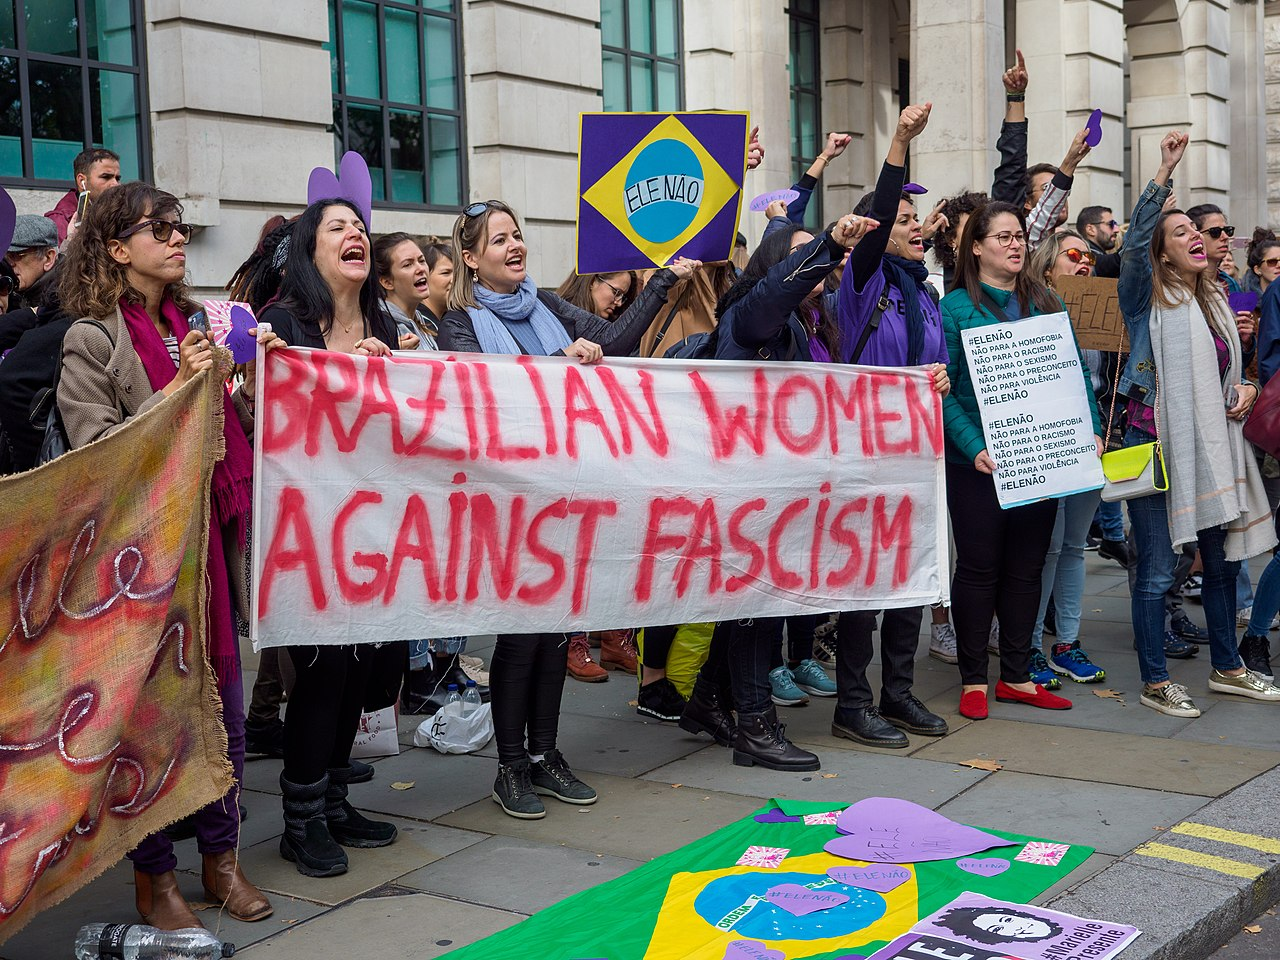 A statement of Solidarity with the people of Brazil